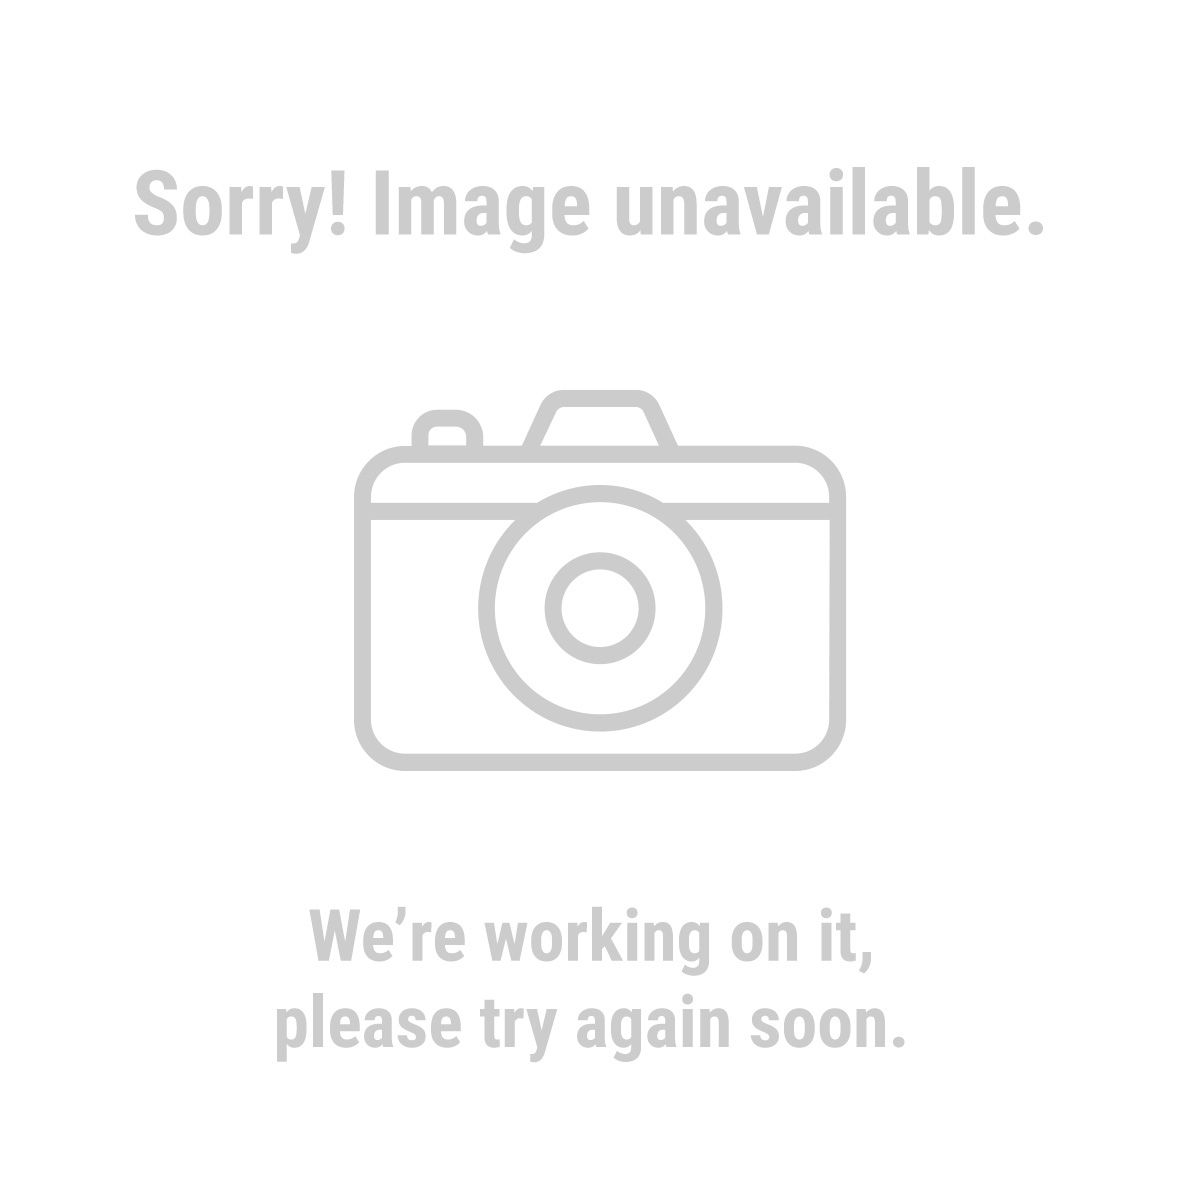 Haul-Master® 61426 Piece Tie Down Kit